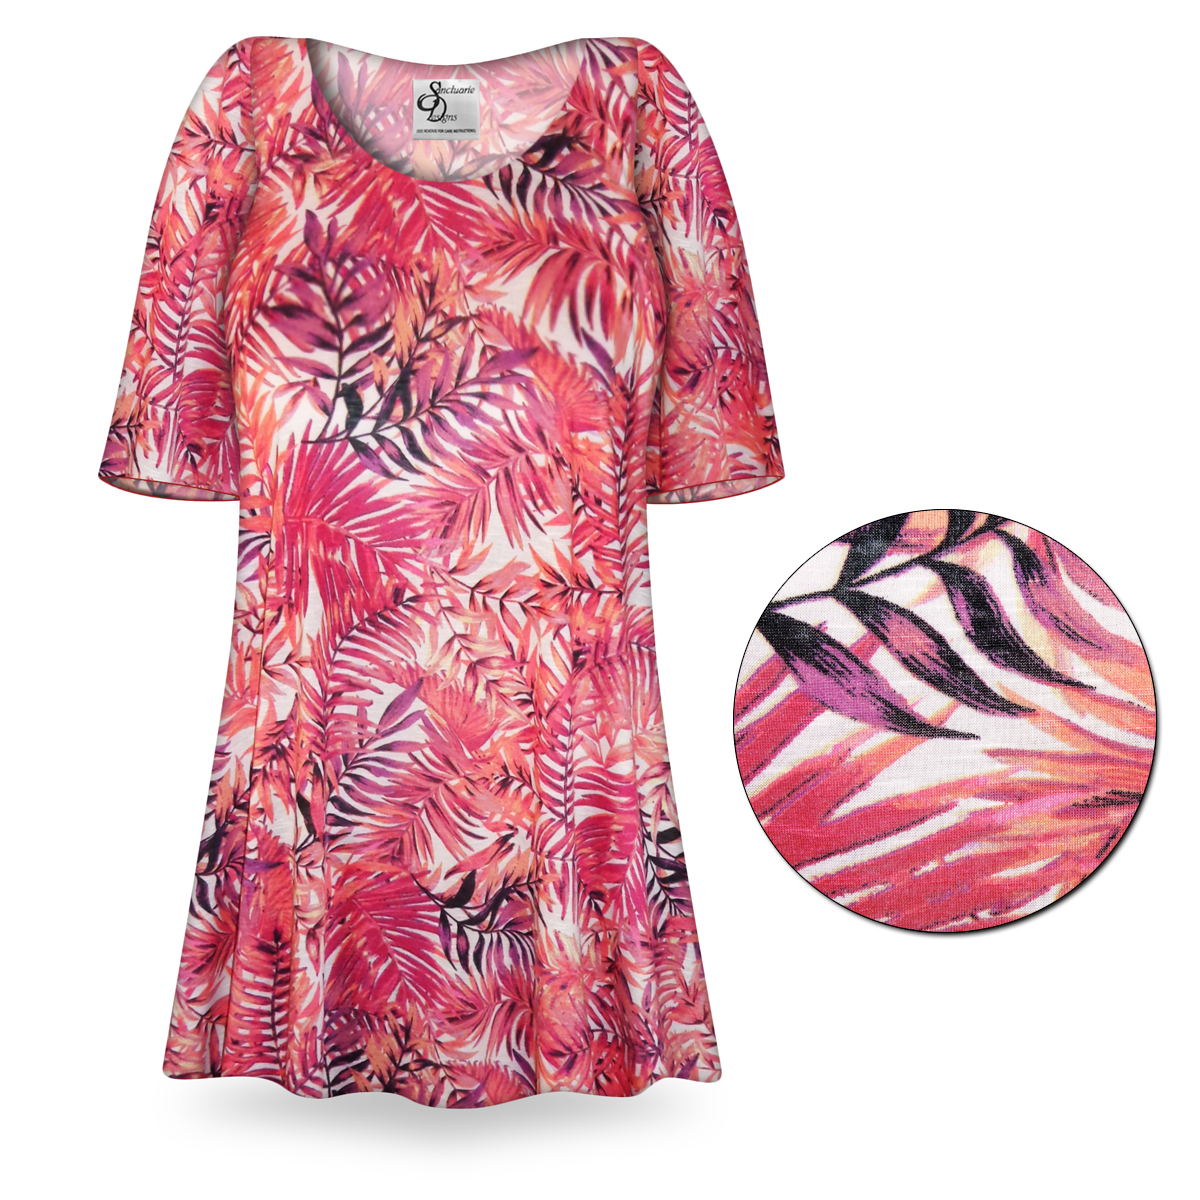 Sale customizable tropical fern print plus size for 3x shirts on sale